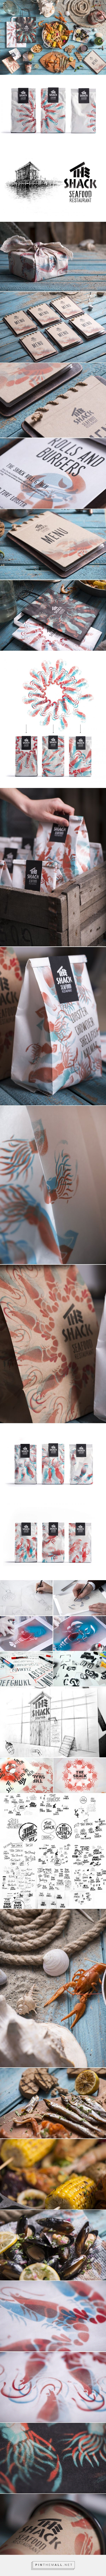 The Shack seafood packaging designed by Backbone Branding - http://www.packagingoftheworld.com/2016/02/the-shack.html